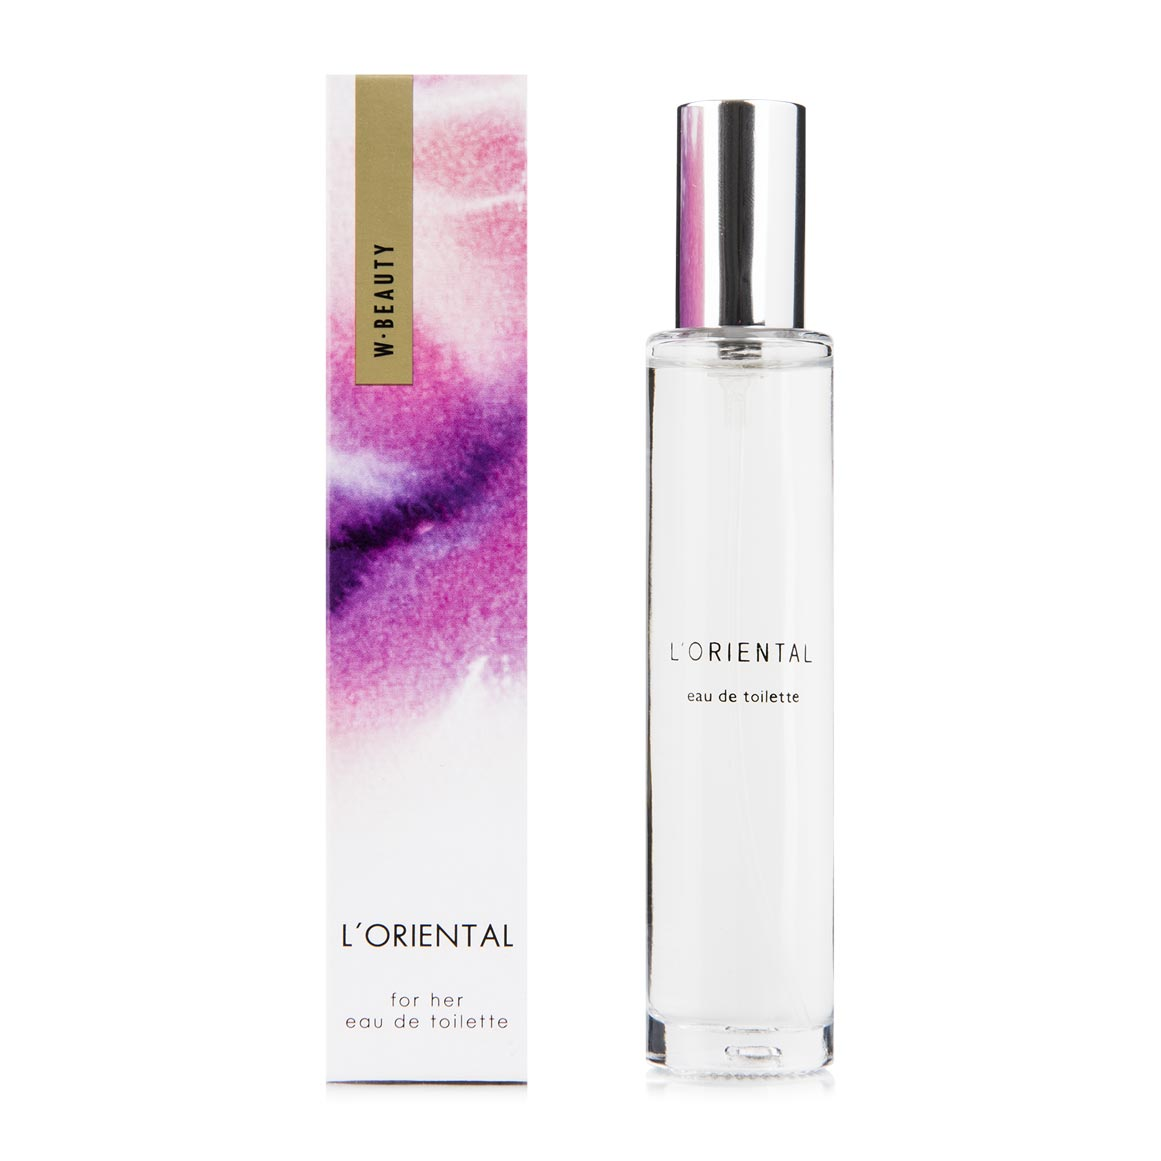 L'ORIENTAL EDT | Woolworths co za